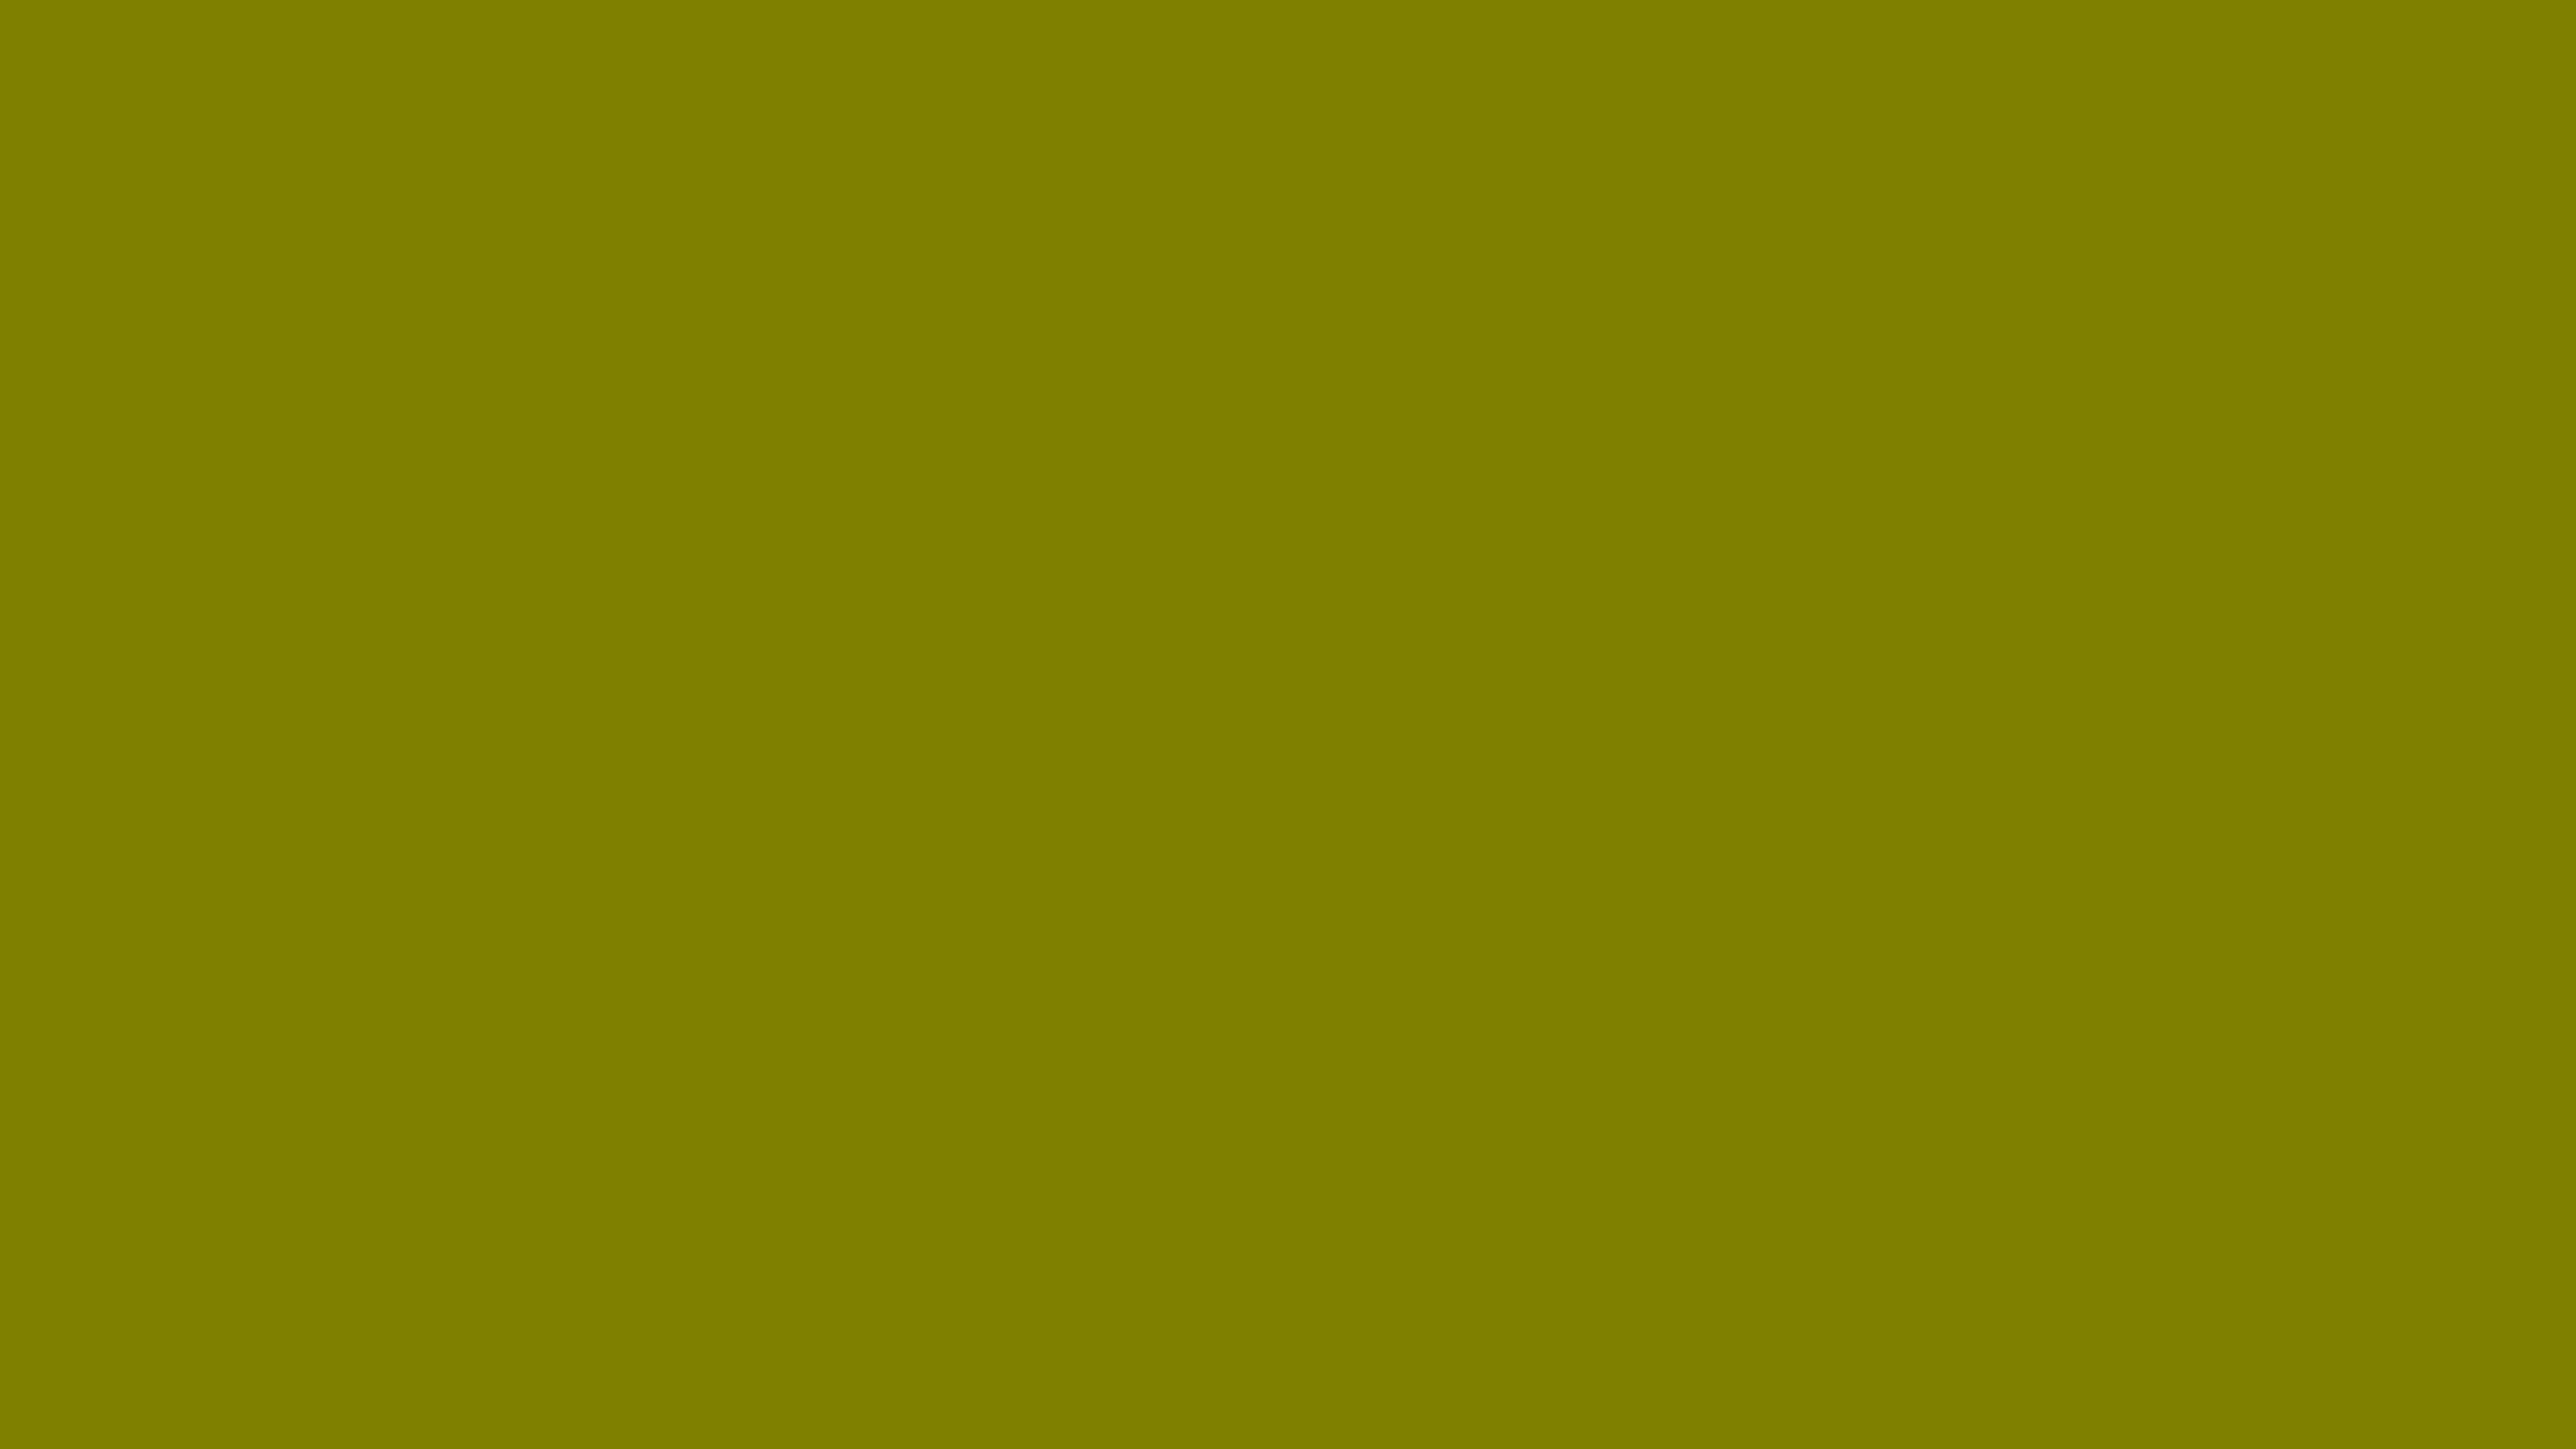 3840x2160 Olive Solid Color Background